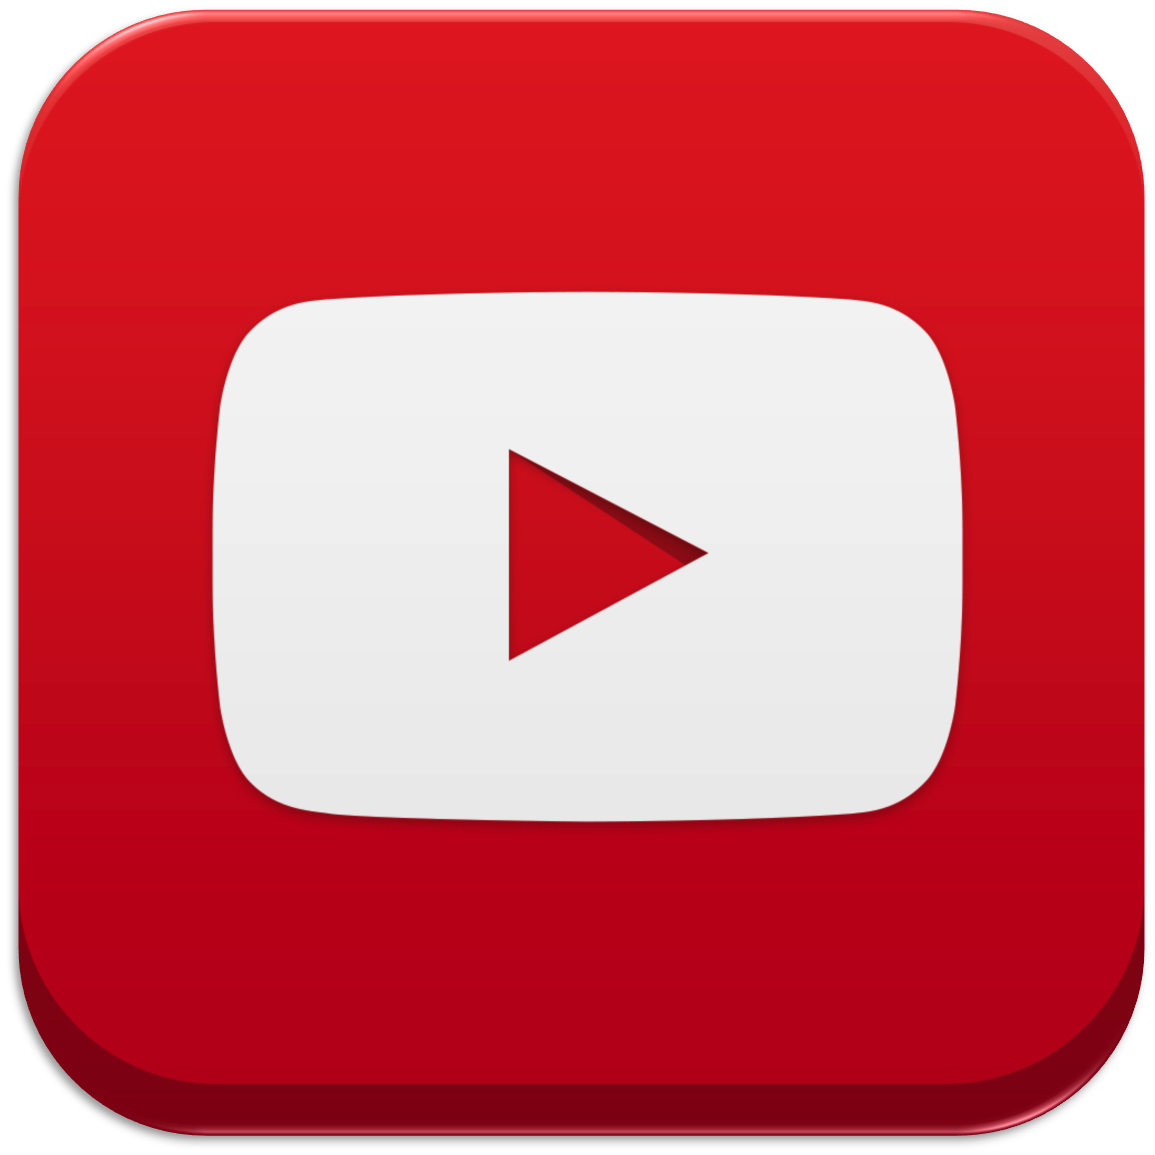 Youtube Subscribe Clipart Transparent.